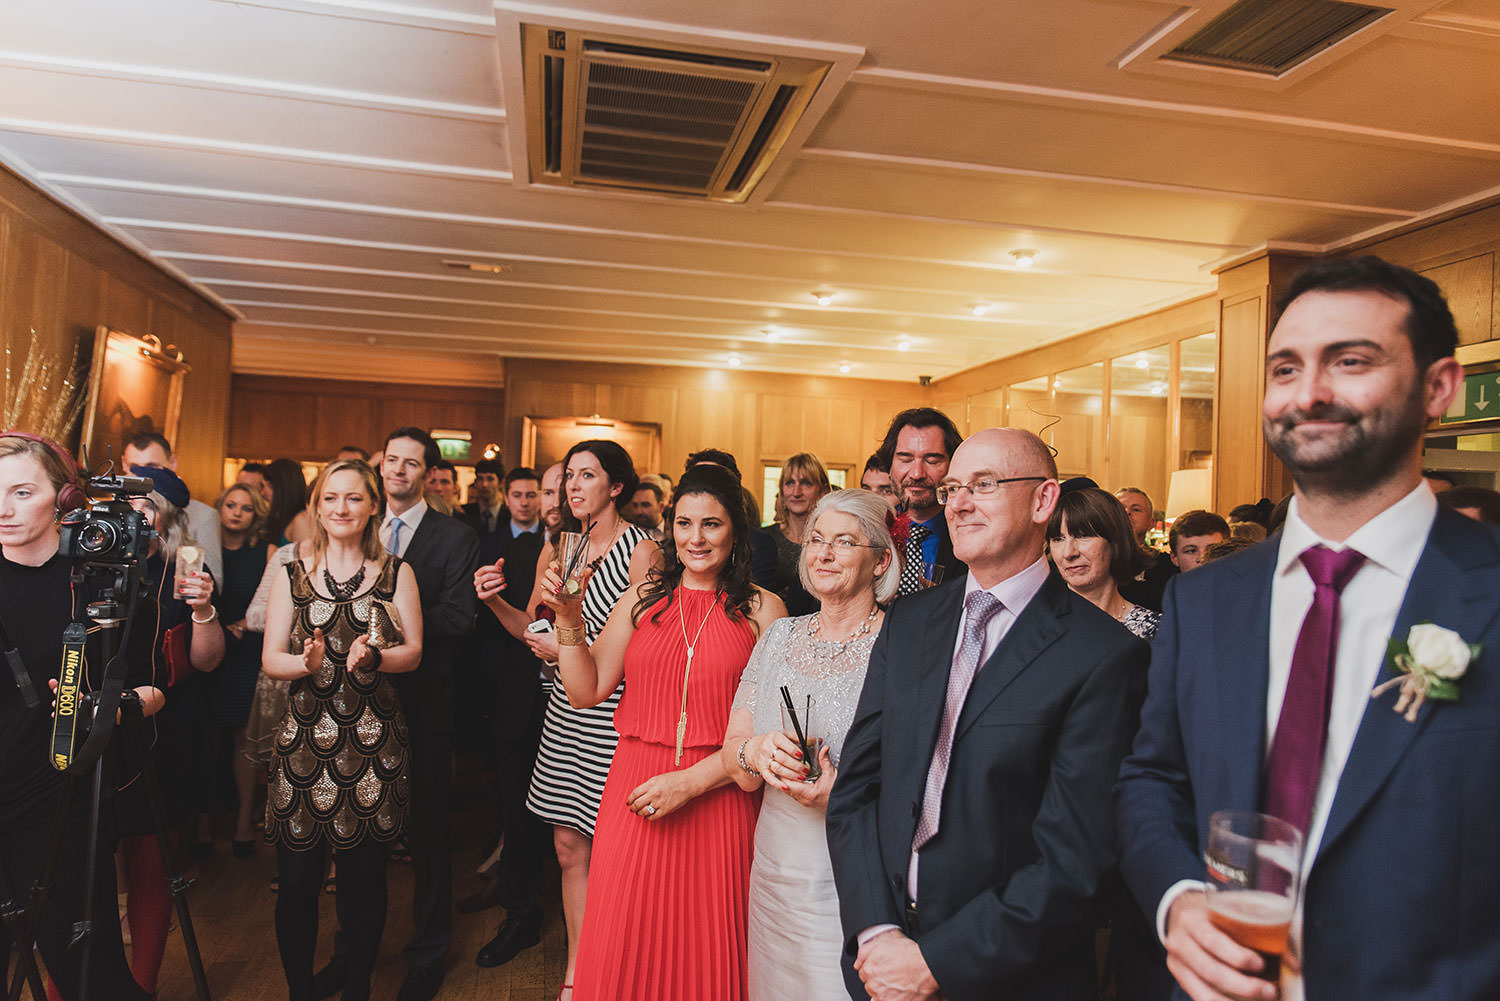 dunraven-arms-hotel-wedding-photography-148.jpg